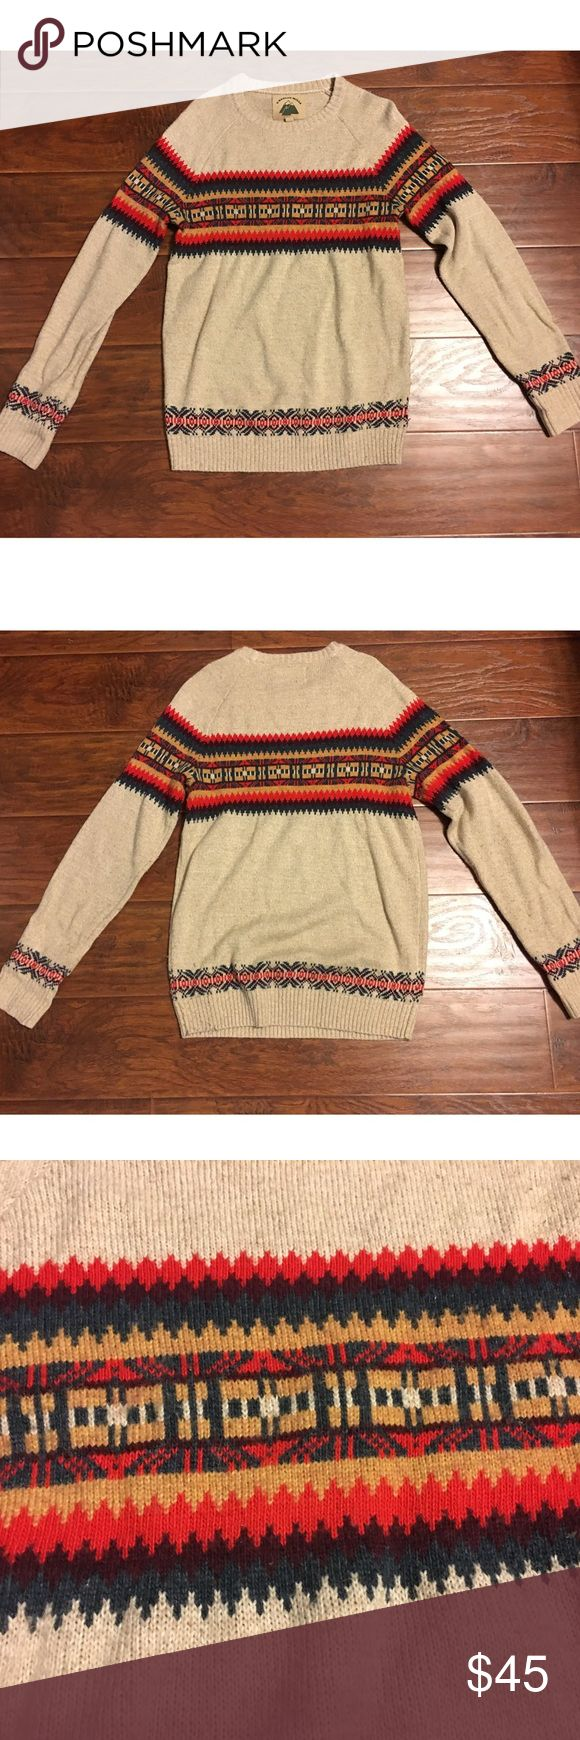 UO O'Hanlon Mills Tribal Print Sweater Tribal Print Sweater. Worn a handful of times. Slight pilling in some areas. Fits as an oversized 'boyfriend' sweater. Urban Outfitters Sweaters Crew & Scoop Necks